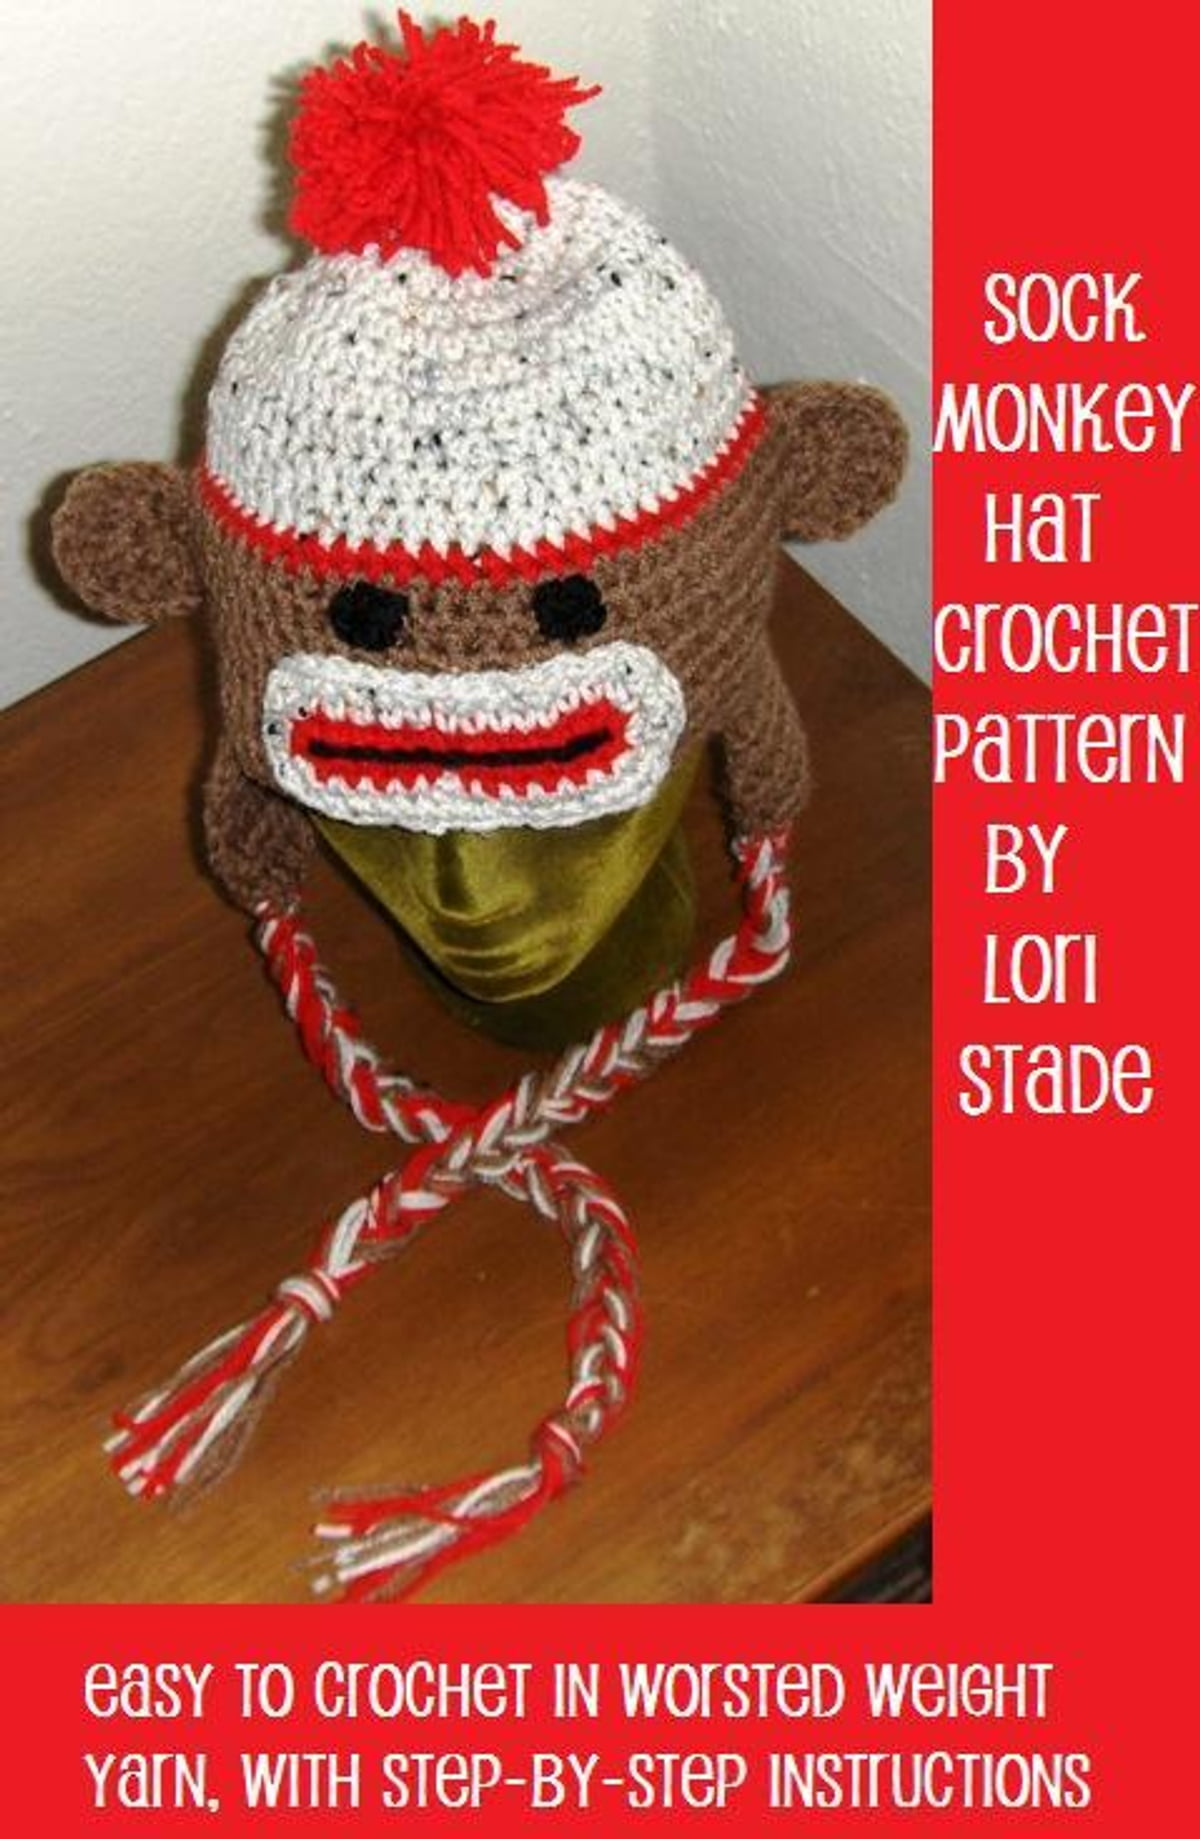 Sock Monkey Hat Crochet Pattern For Adults And Teens Ebook By Lori